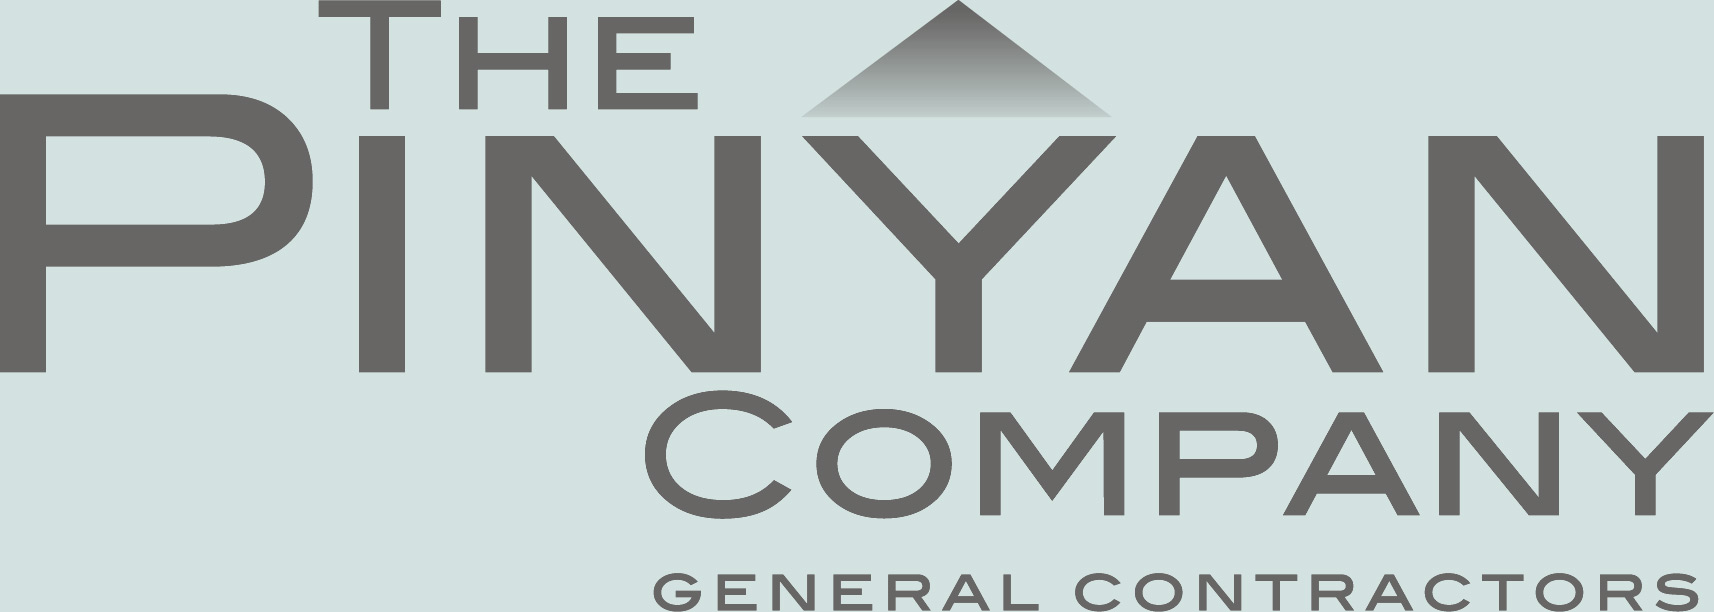 The Pinyan Company